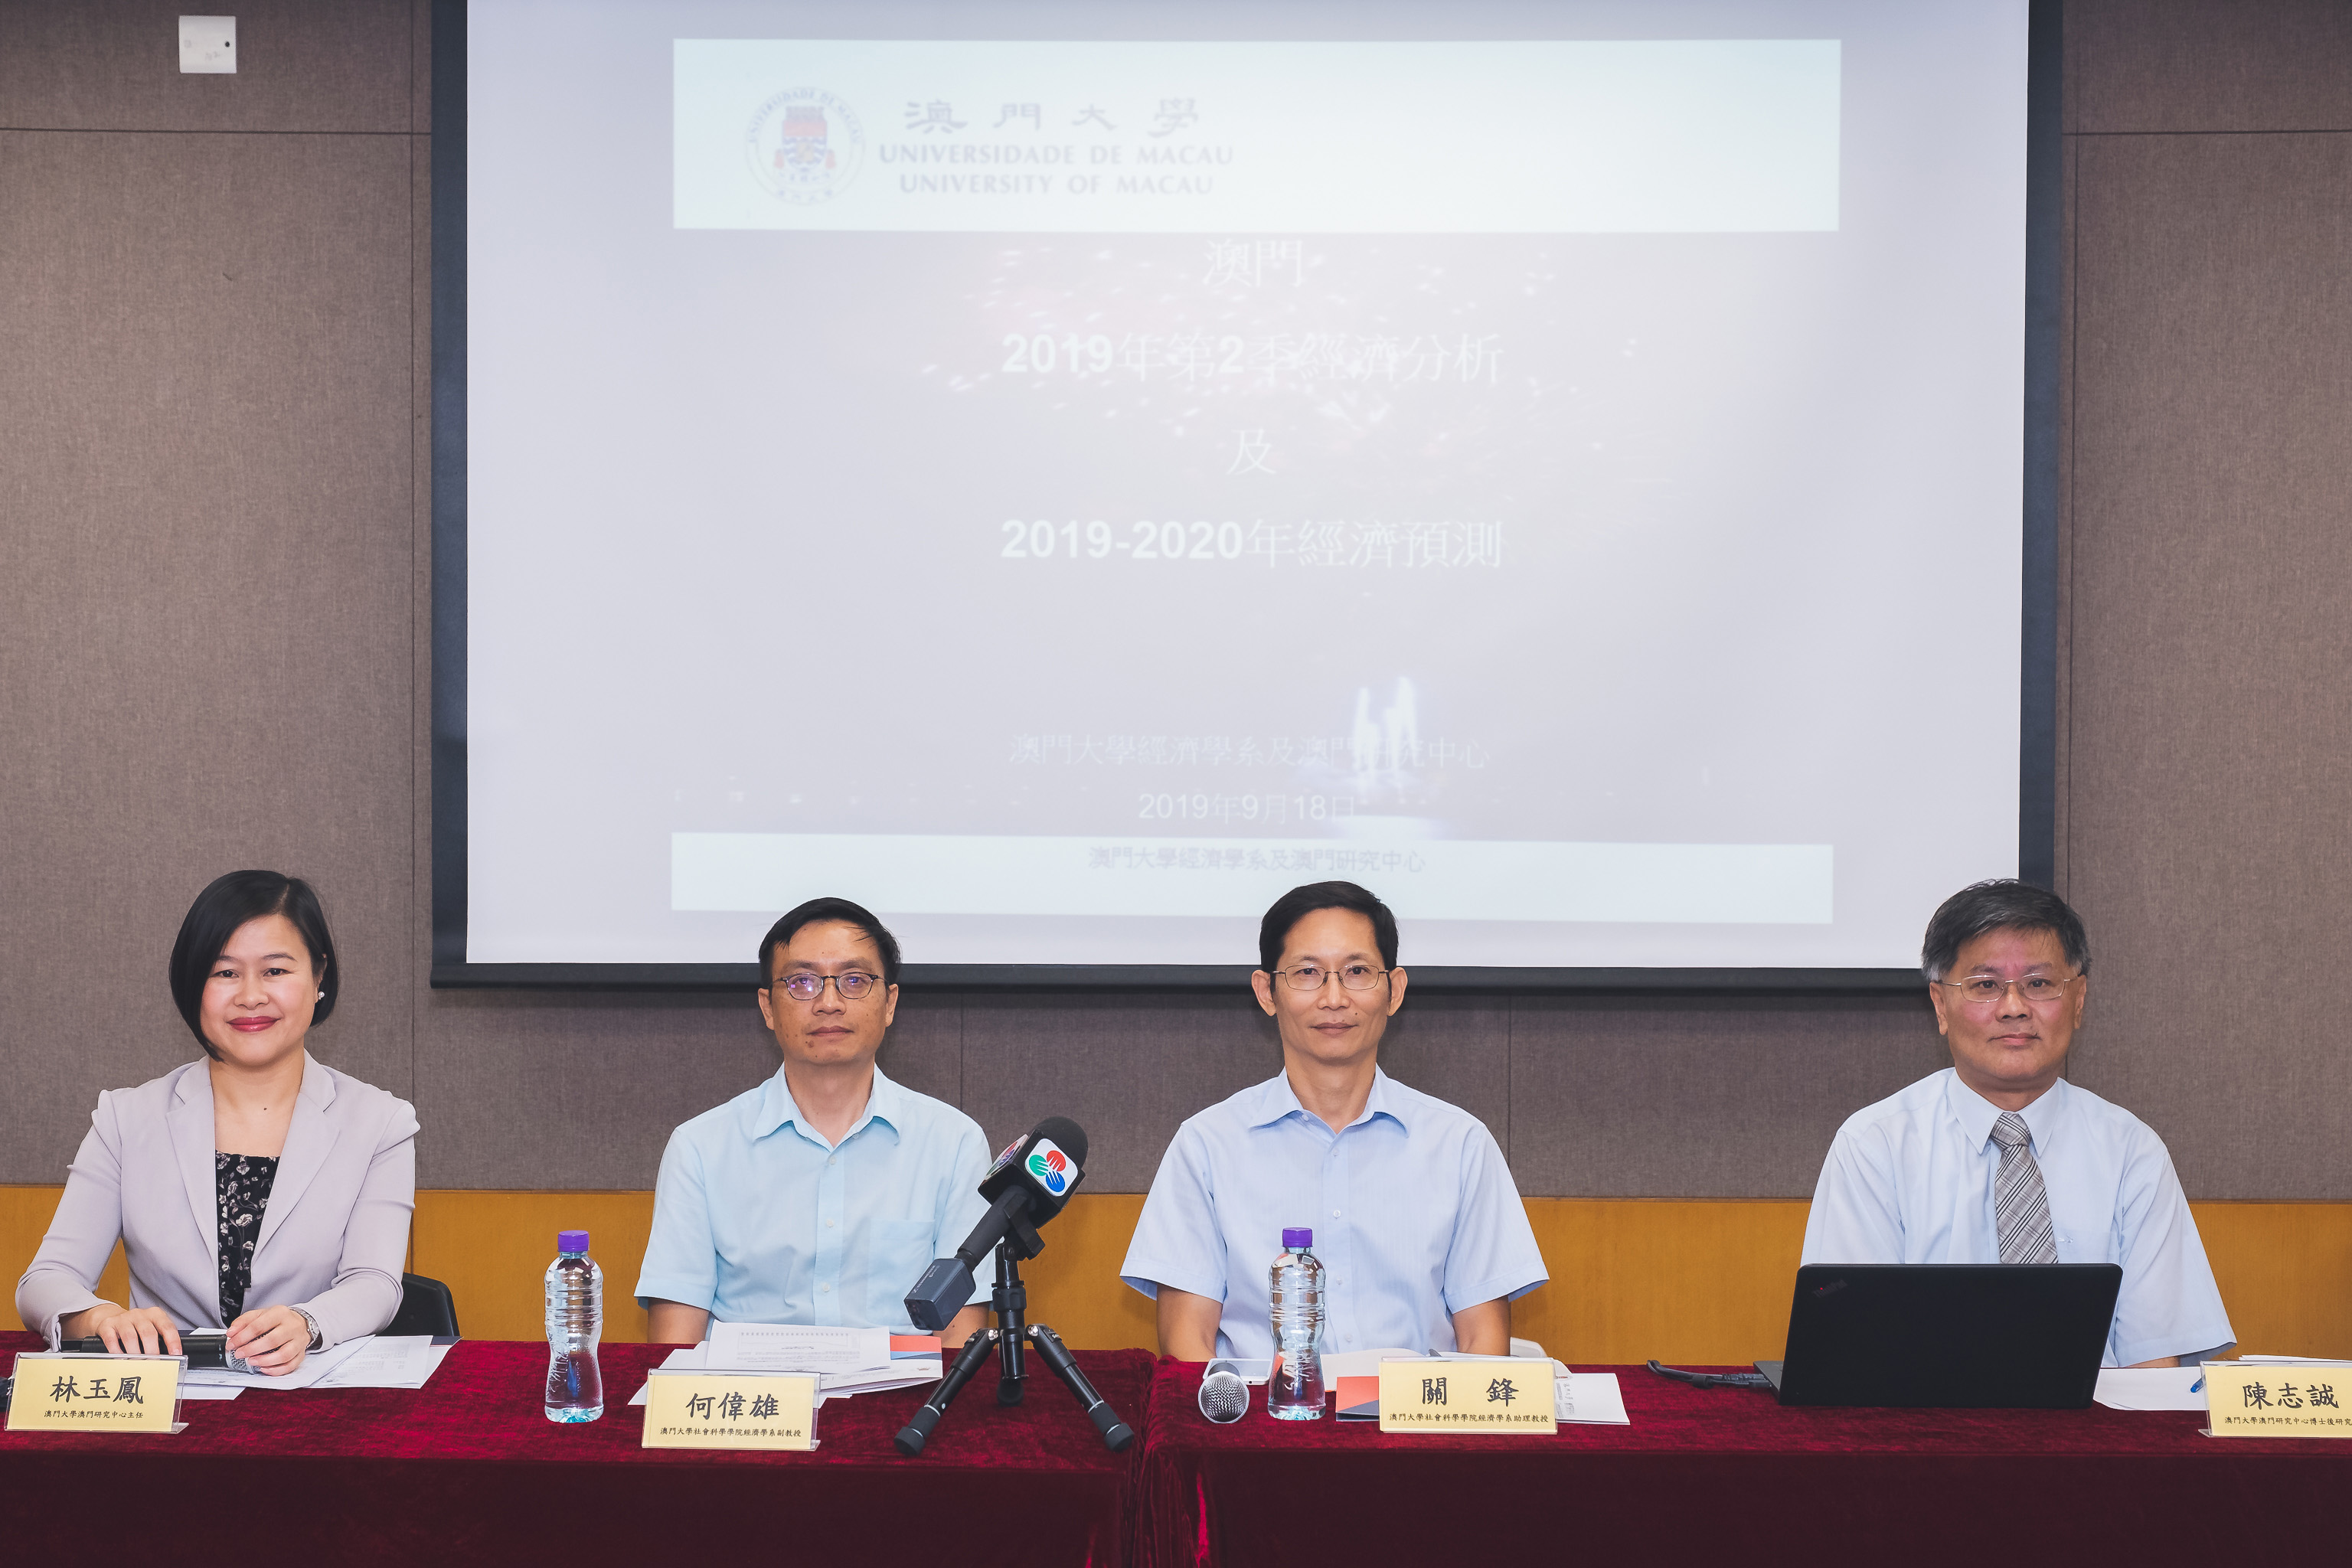 UM has released the 2019-2020 macroeconomic forecast for Macao